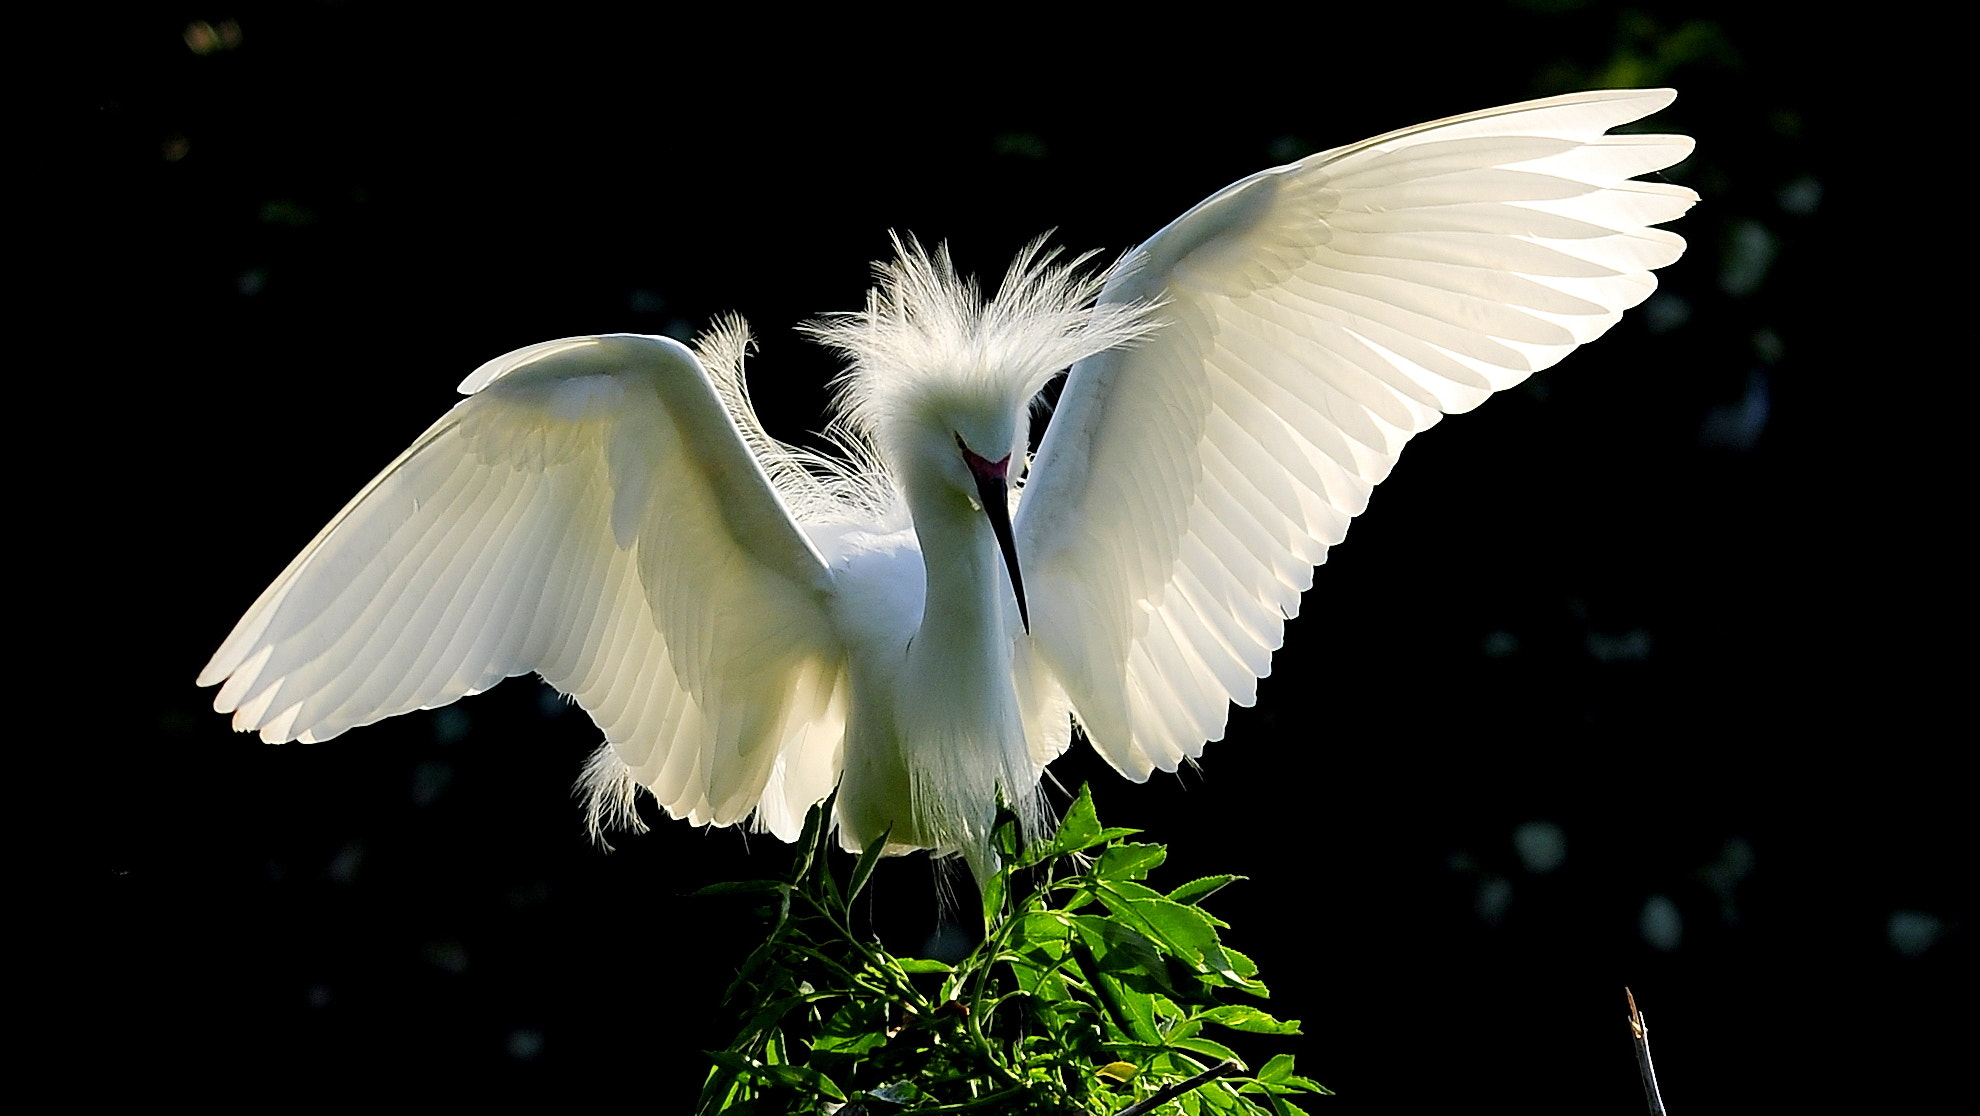 Photograph Snowy Egret by Peter Michael on 500px